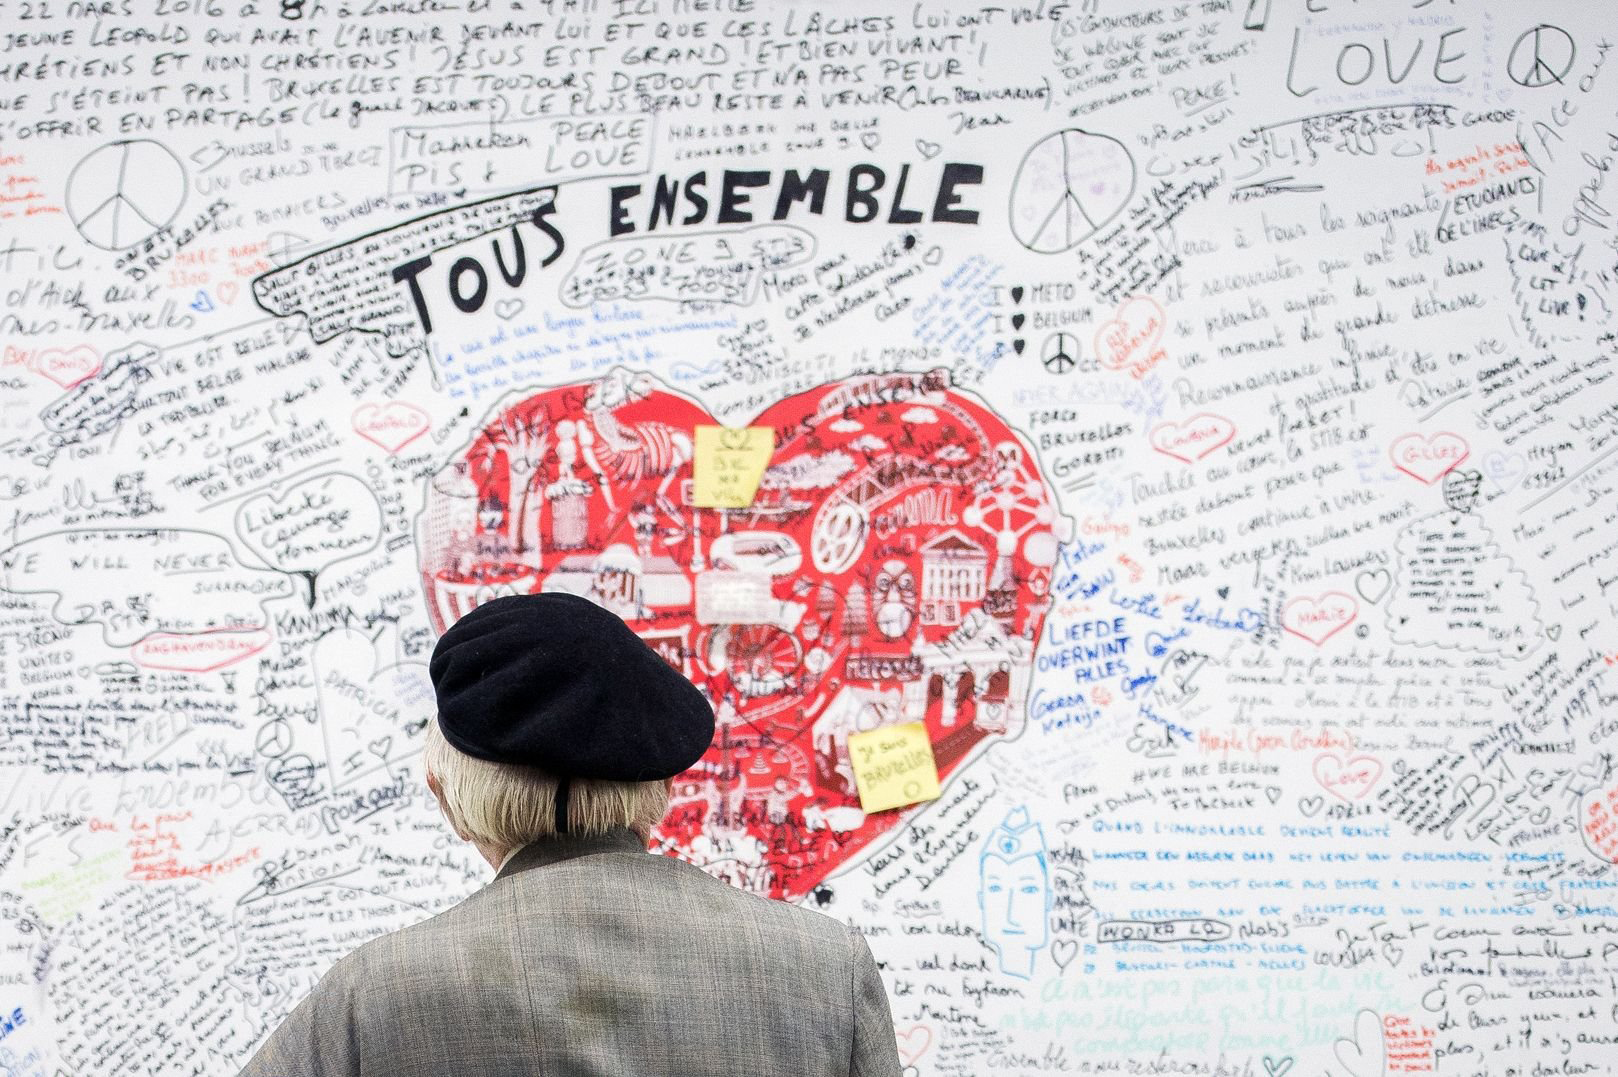 A man looks at a memorial panel for the victims of the March 22 attacks at the entrance of the Maelbeek-Maalbeek subway station in Brussels on May 11, 2016.